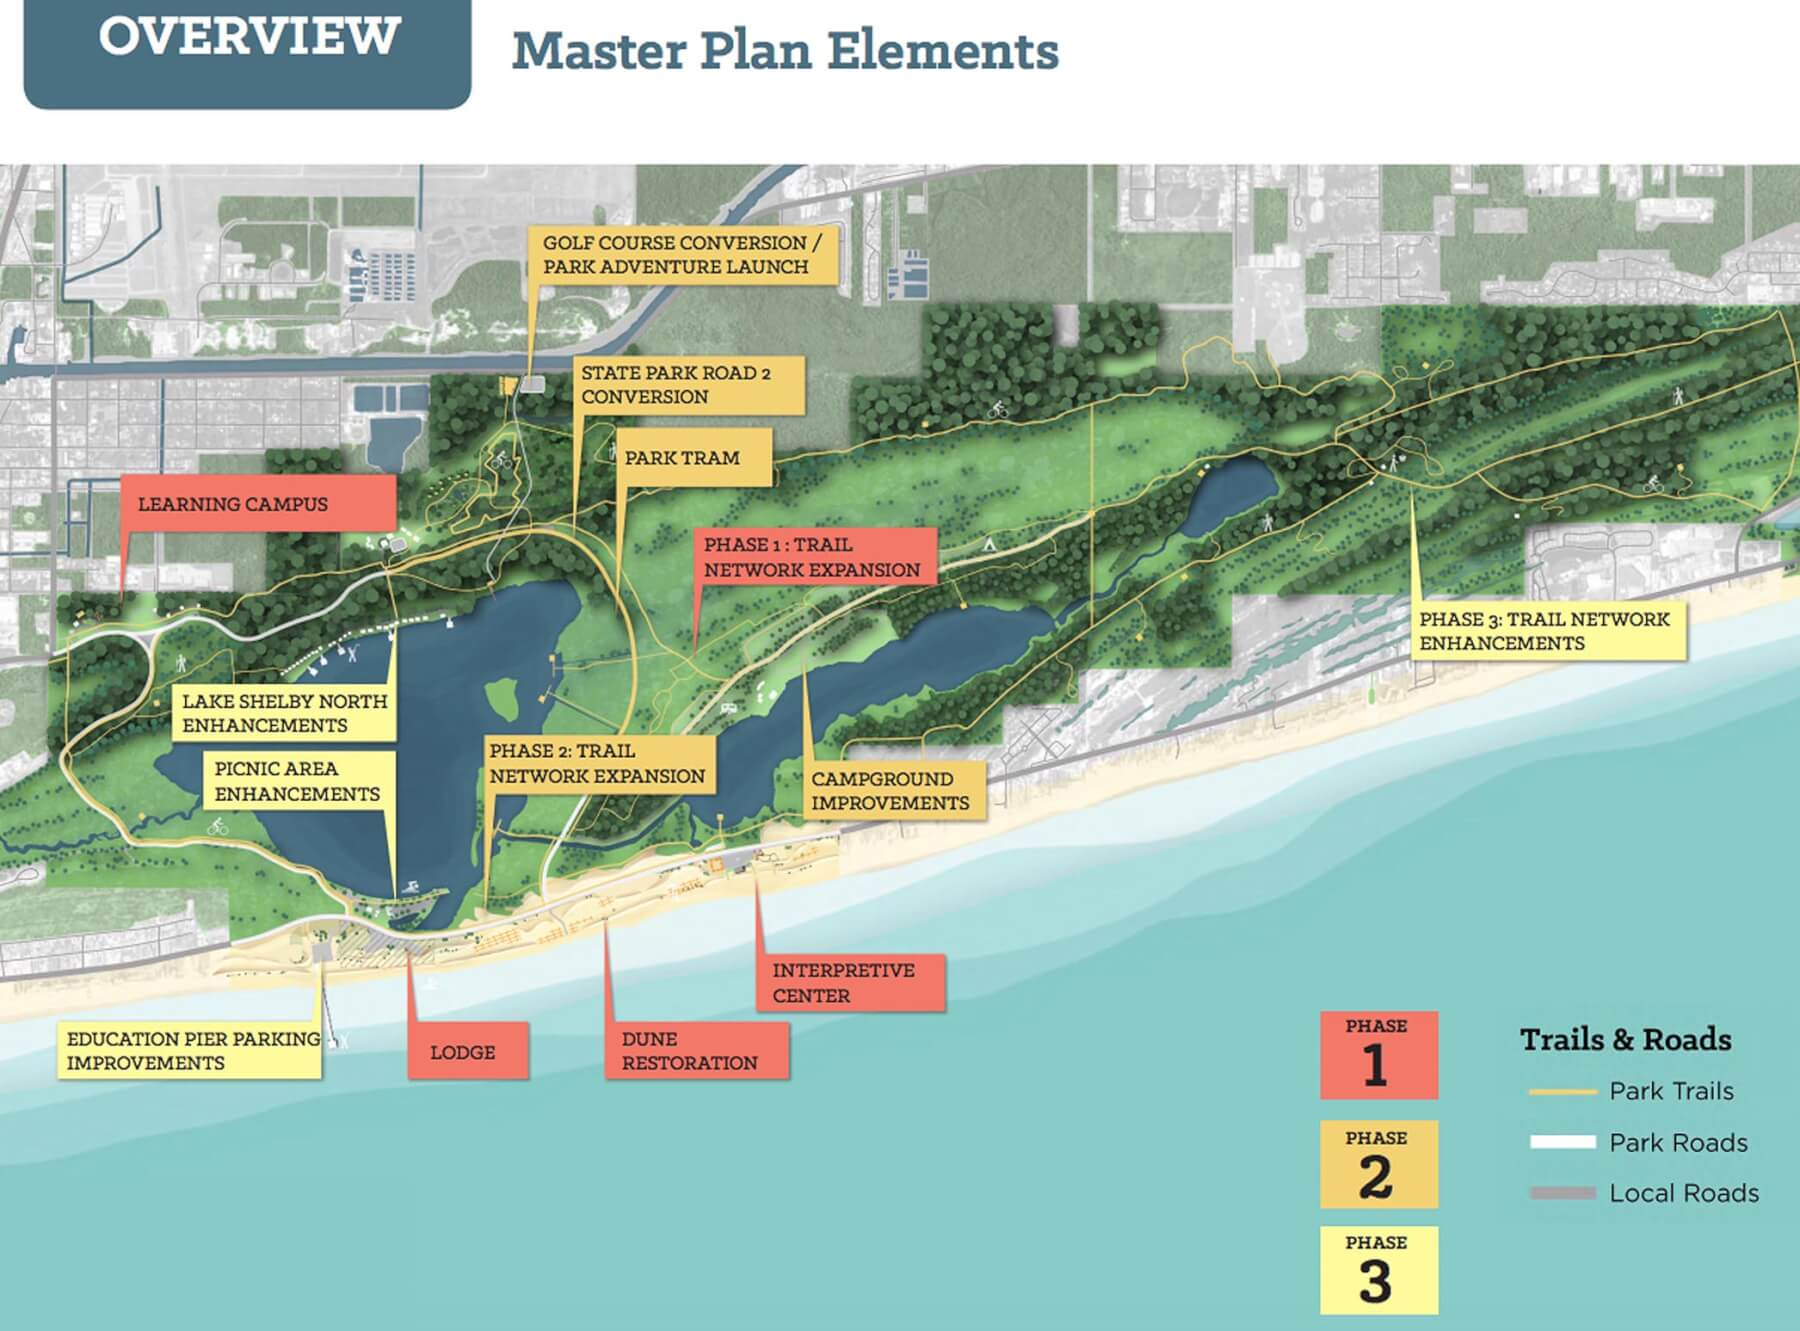 Master plan unveiled for Gulf State Park enhancements - Lagniappe Mobile